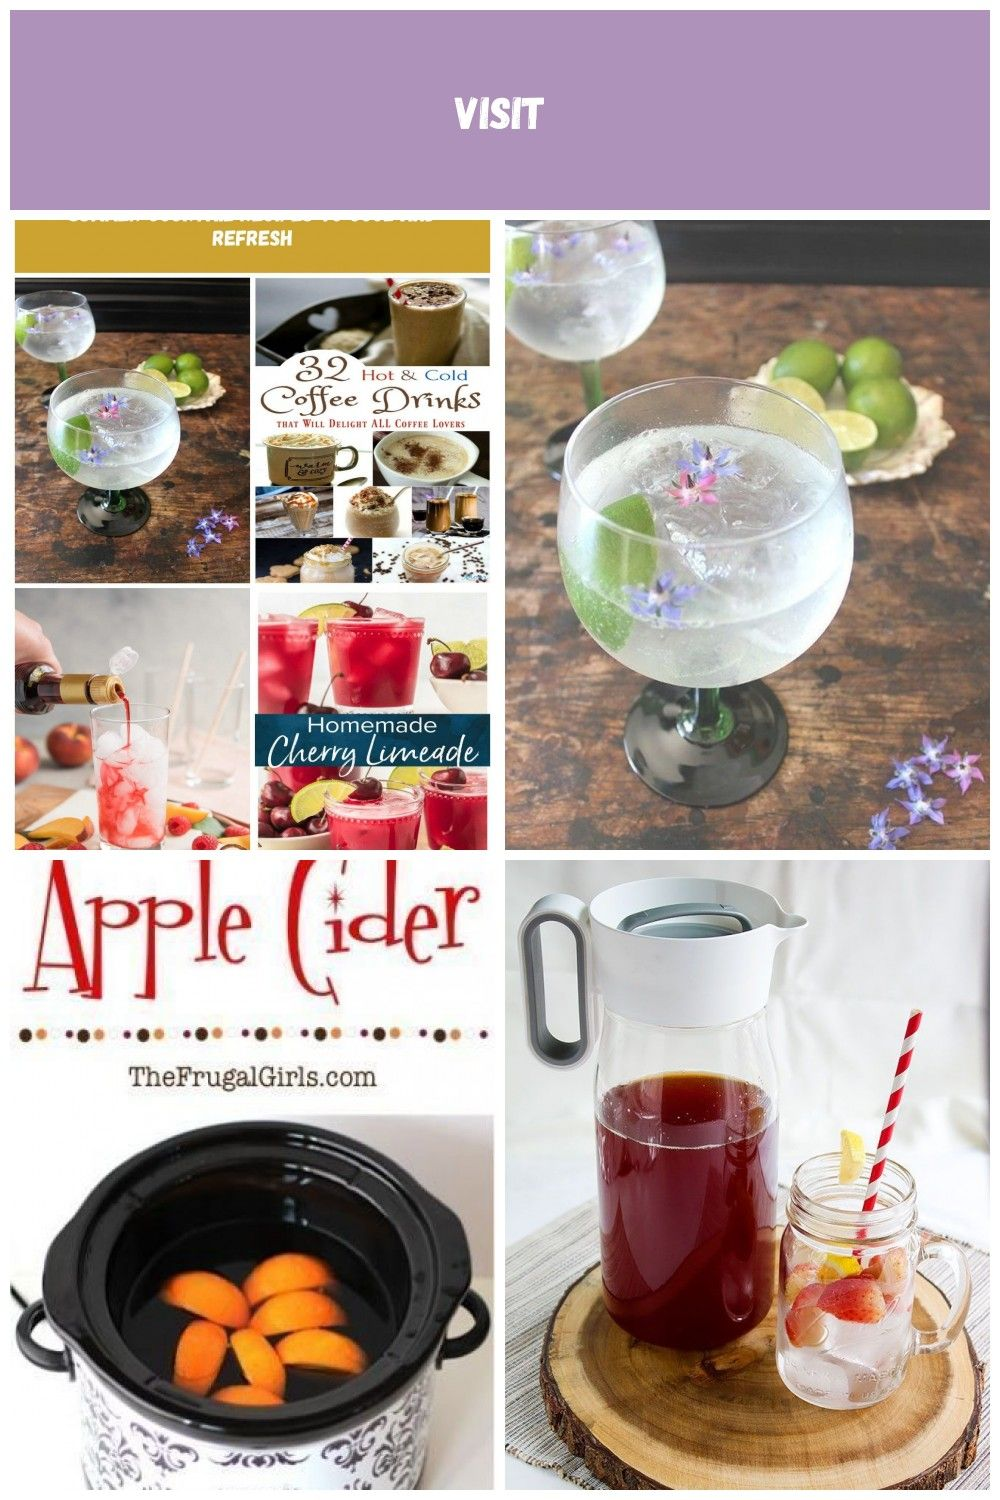 Classic Gin Rickey Cocktail recipe - refreshing summer drinks nonalcoholic, summer drinks nonalcoholic healthy, summer drinks nonalcoholic easy, fun summer drinks nonalcoholic drinks nonalcoholic Summer Cocktail Recipes to Cool and Refresh drink Nonalcoholic #nonalcoholicsummerdrinks